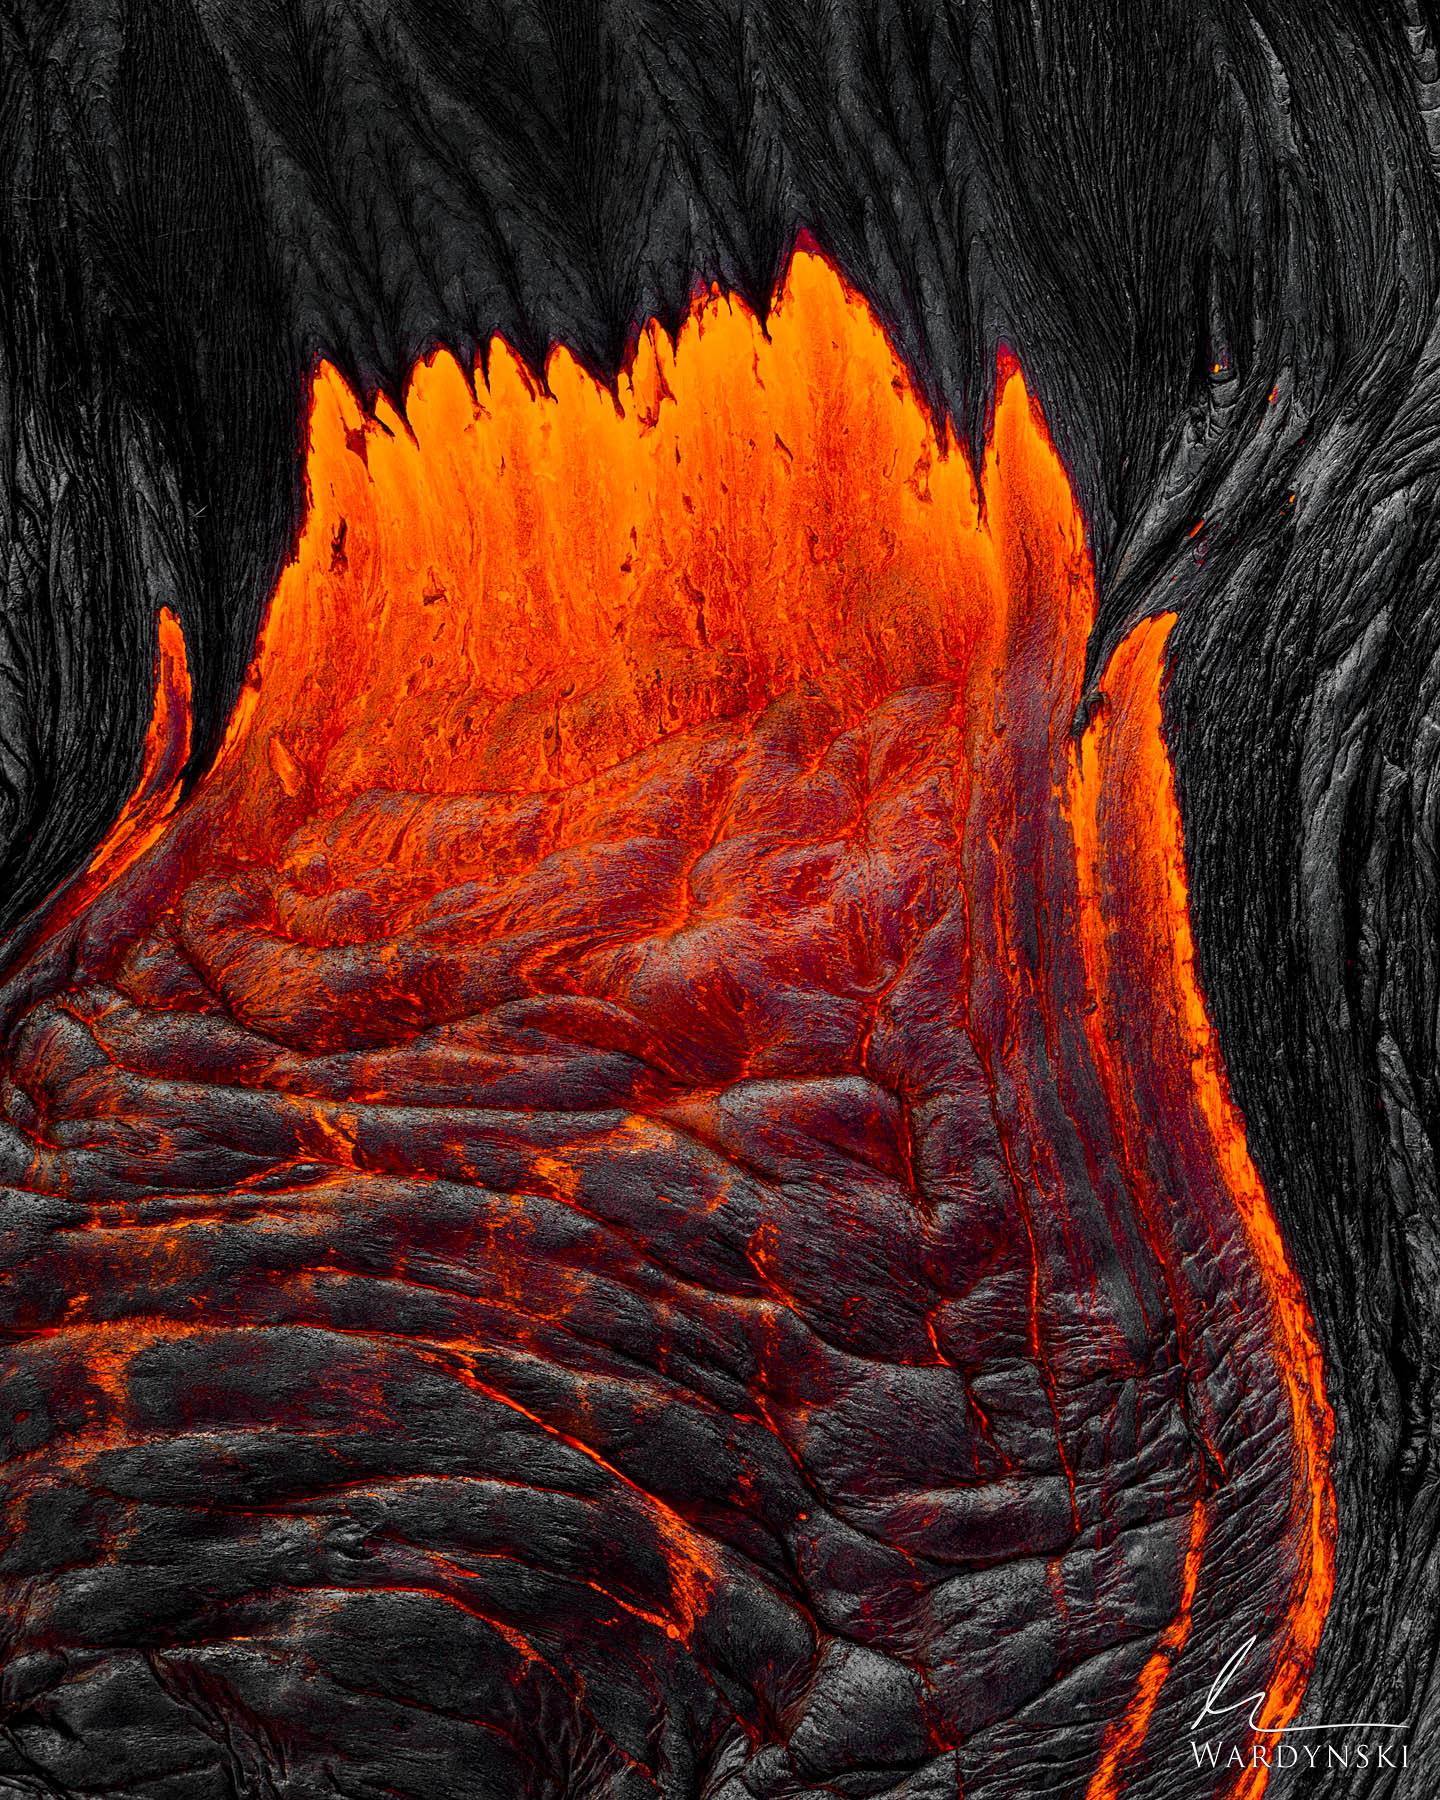 Fine Art Print | Limited Edition of 50  Hot lava flows like honey out of a fresh breakout on the Kilauea volcano in Hawaii. Kilauea...